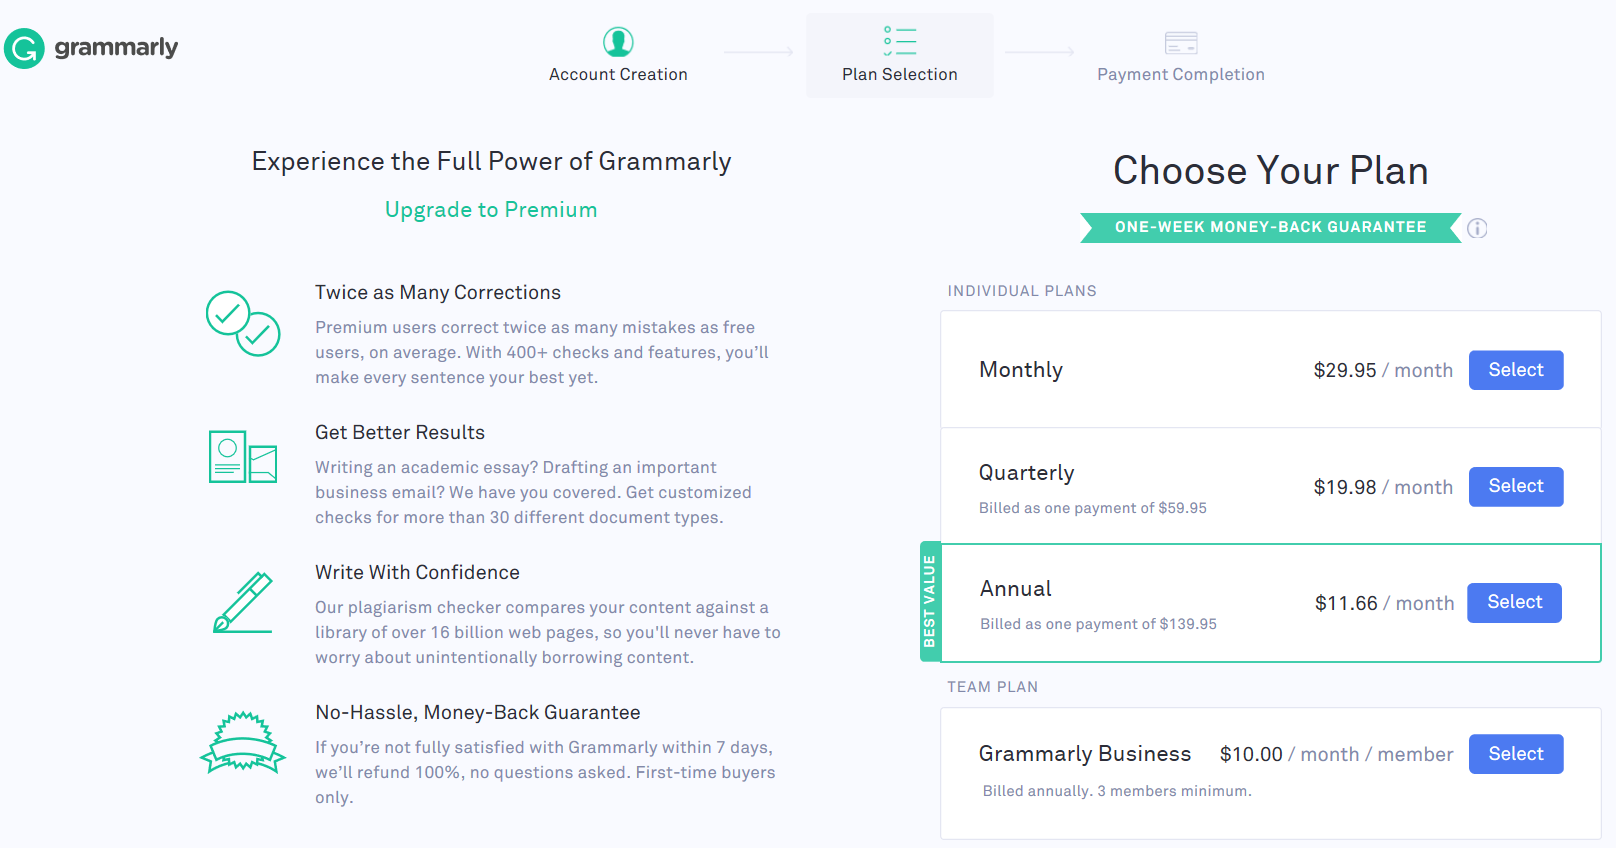 grammarly-screenshot